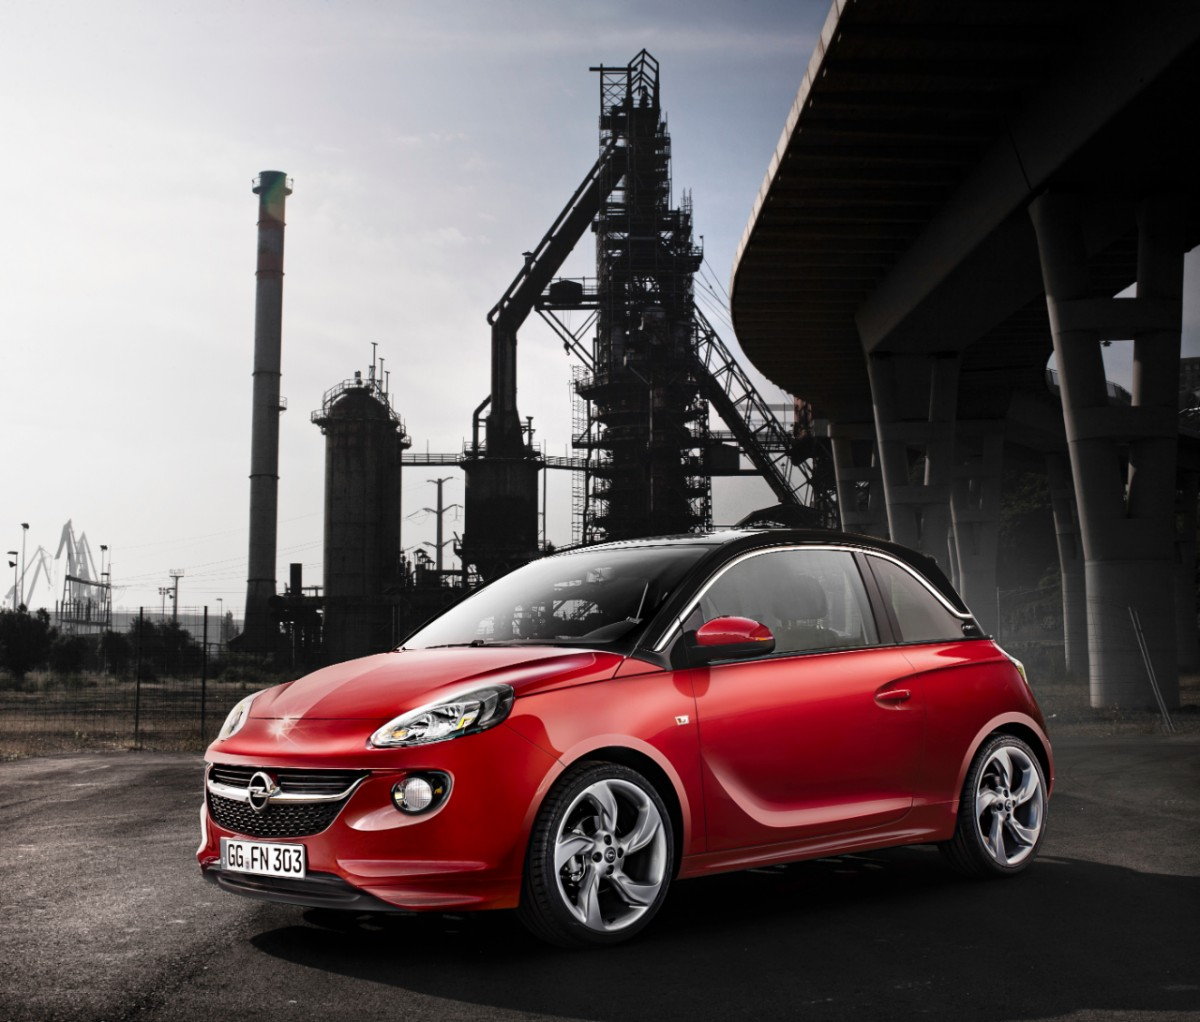 billig, billiger, breaking, der neue Opel Adam,  EU-Import, gnstig, Hauspreis, Hndlerrabatt, Kampfpreis, Adam, Opel Adam, Internet, Hndler, Preisnachlass, Rabatt, tageszulassung